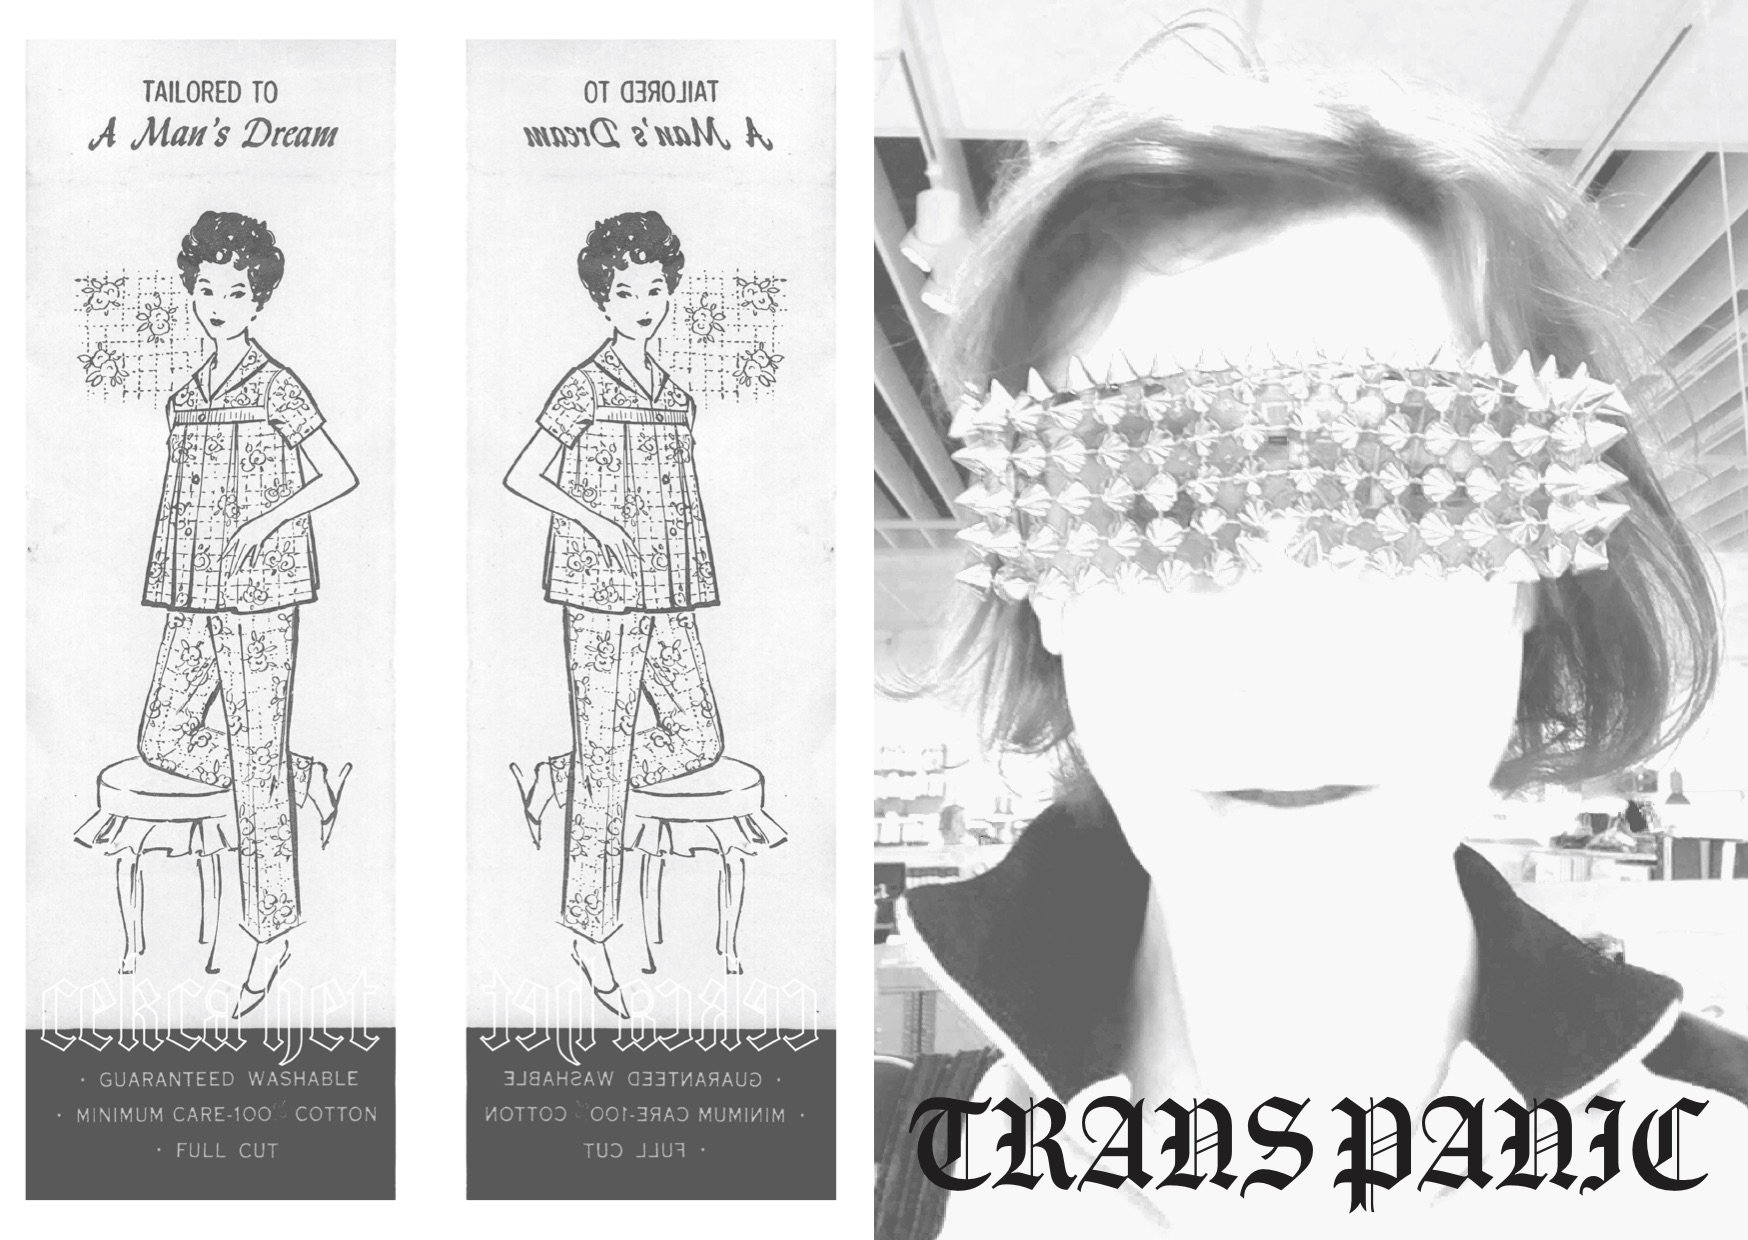 Trans panic zine cover promo print, includes two black and white vintage clothing images of ladies wearing pyjamas, and an image of artist wearing studded glasses